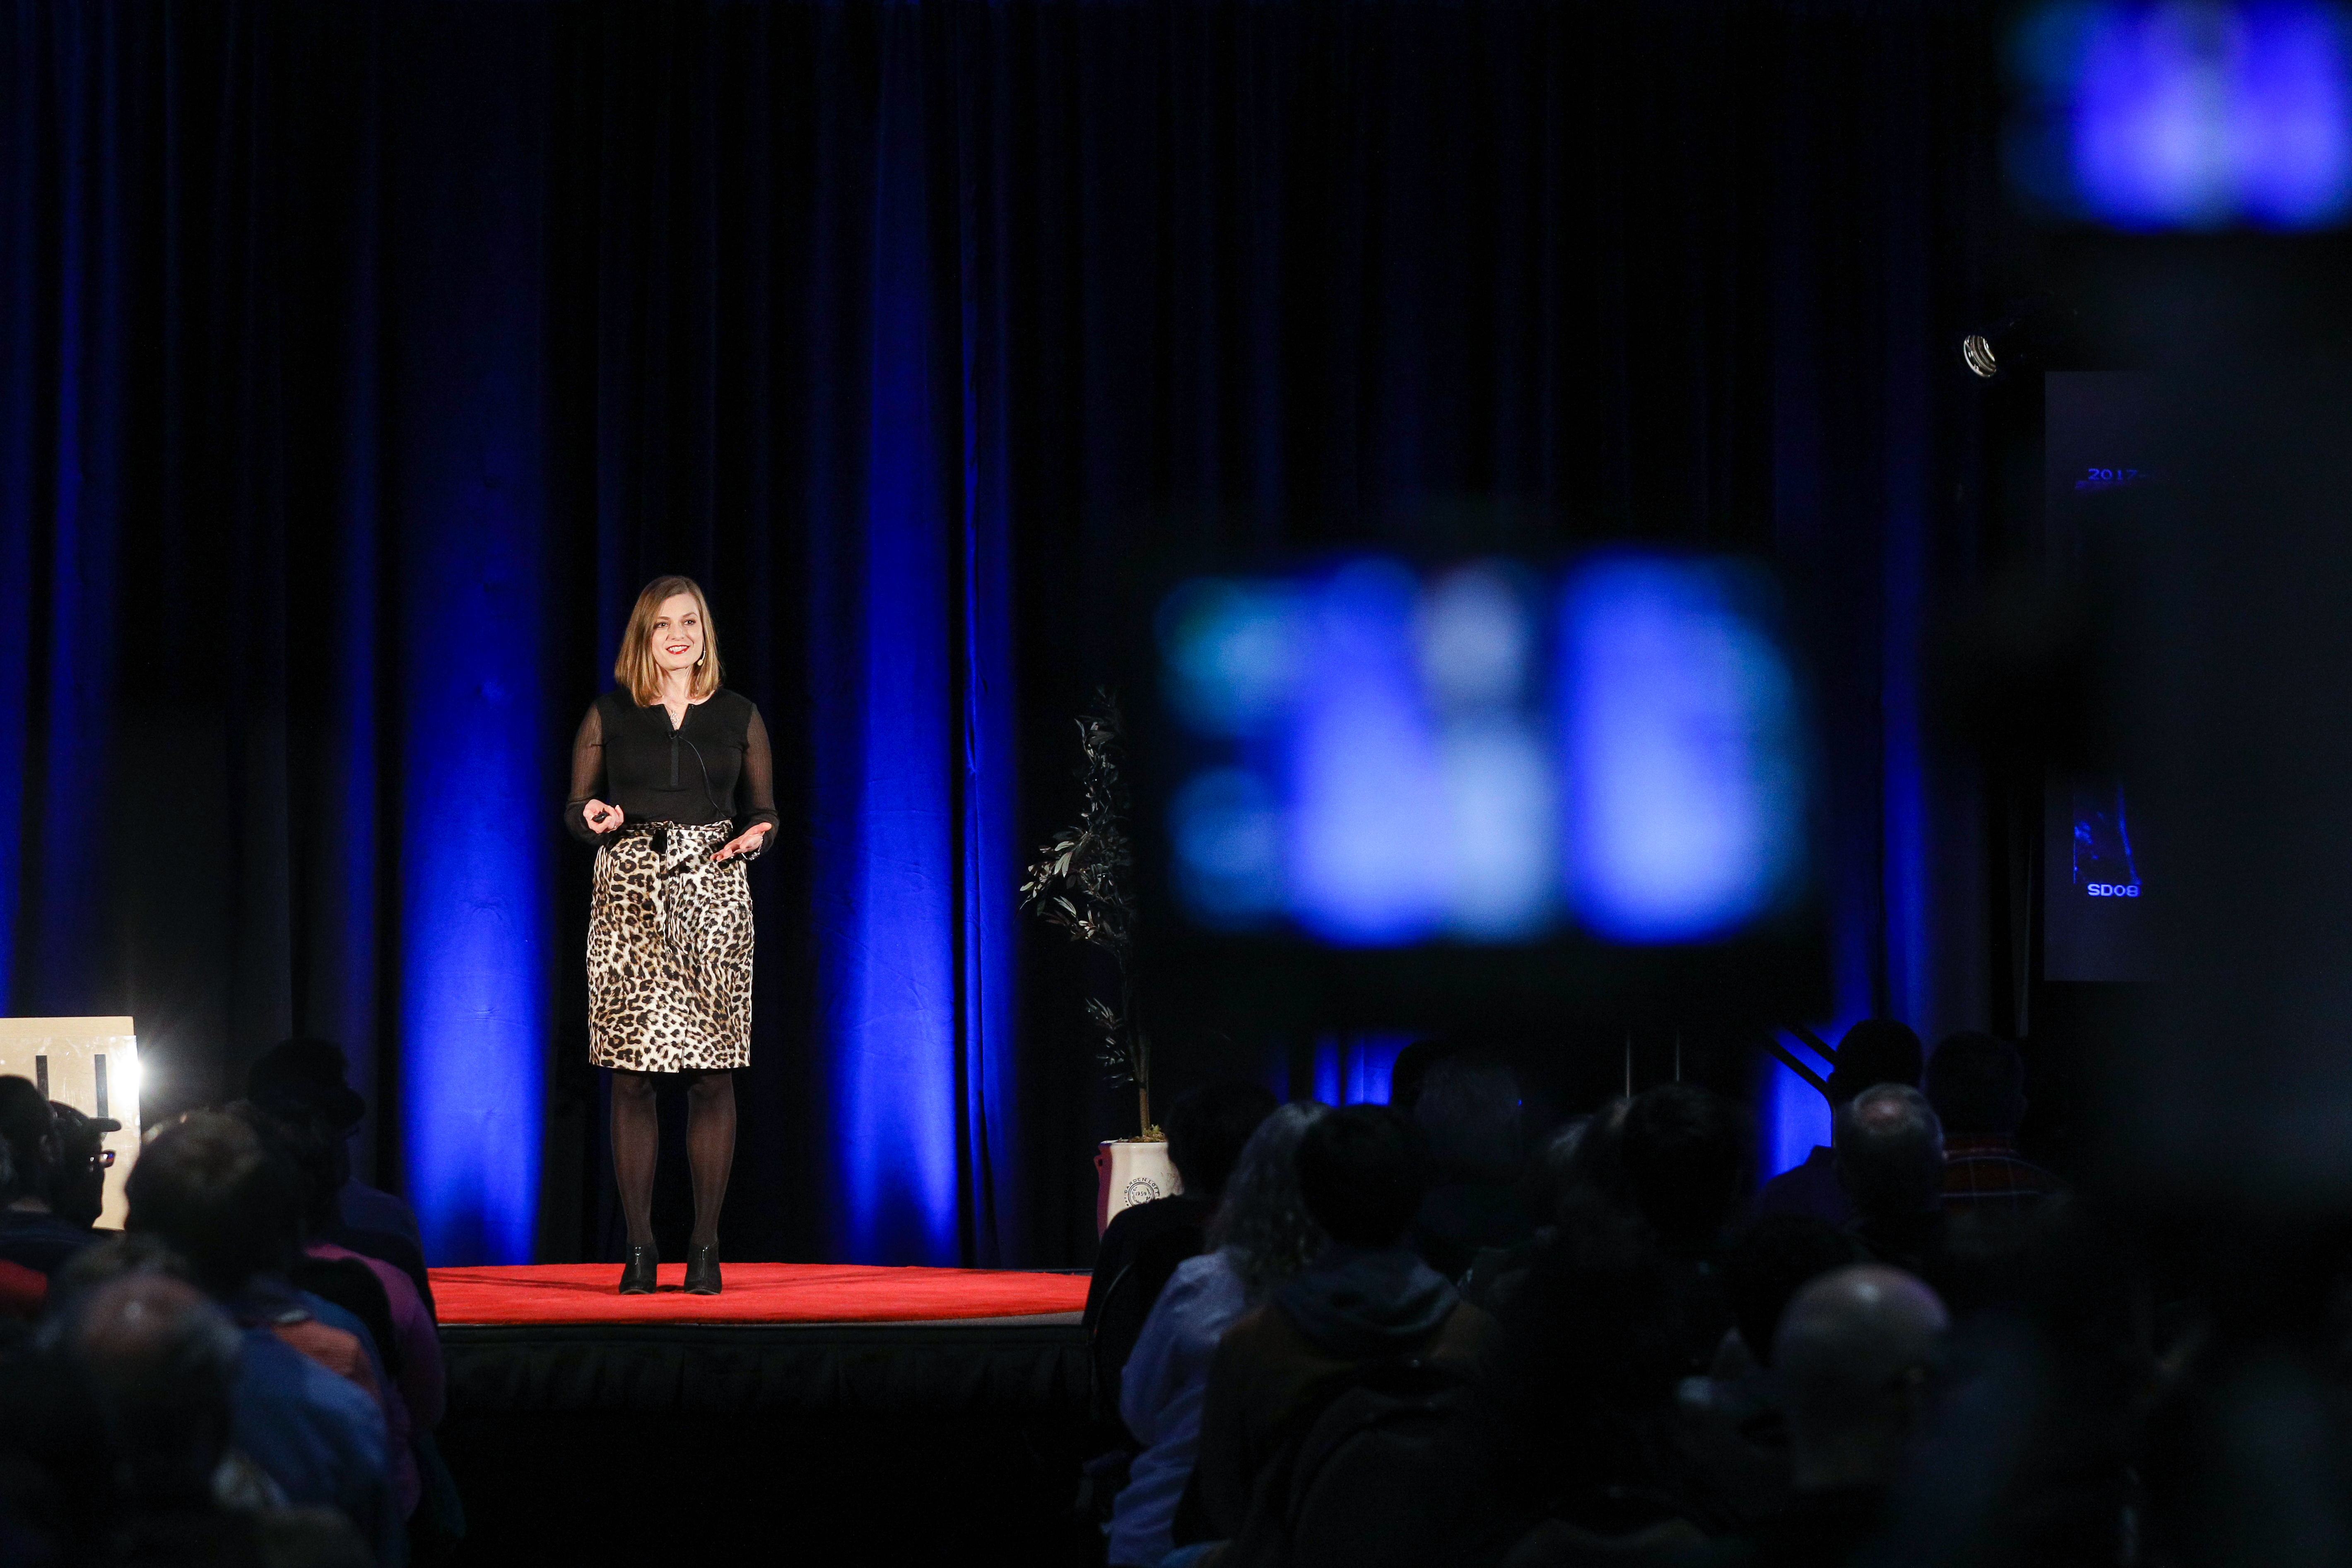 What-It's-Really-Like-to-Give-a-TED-Talk